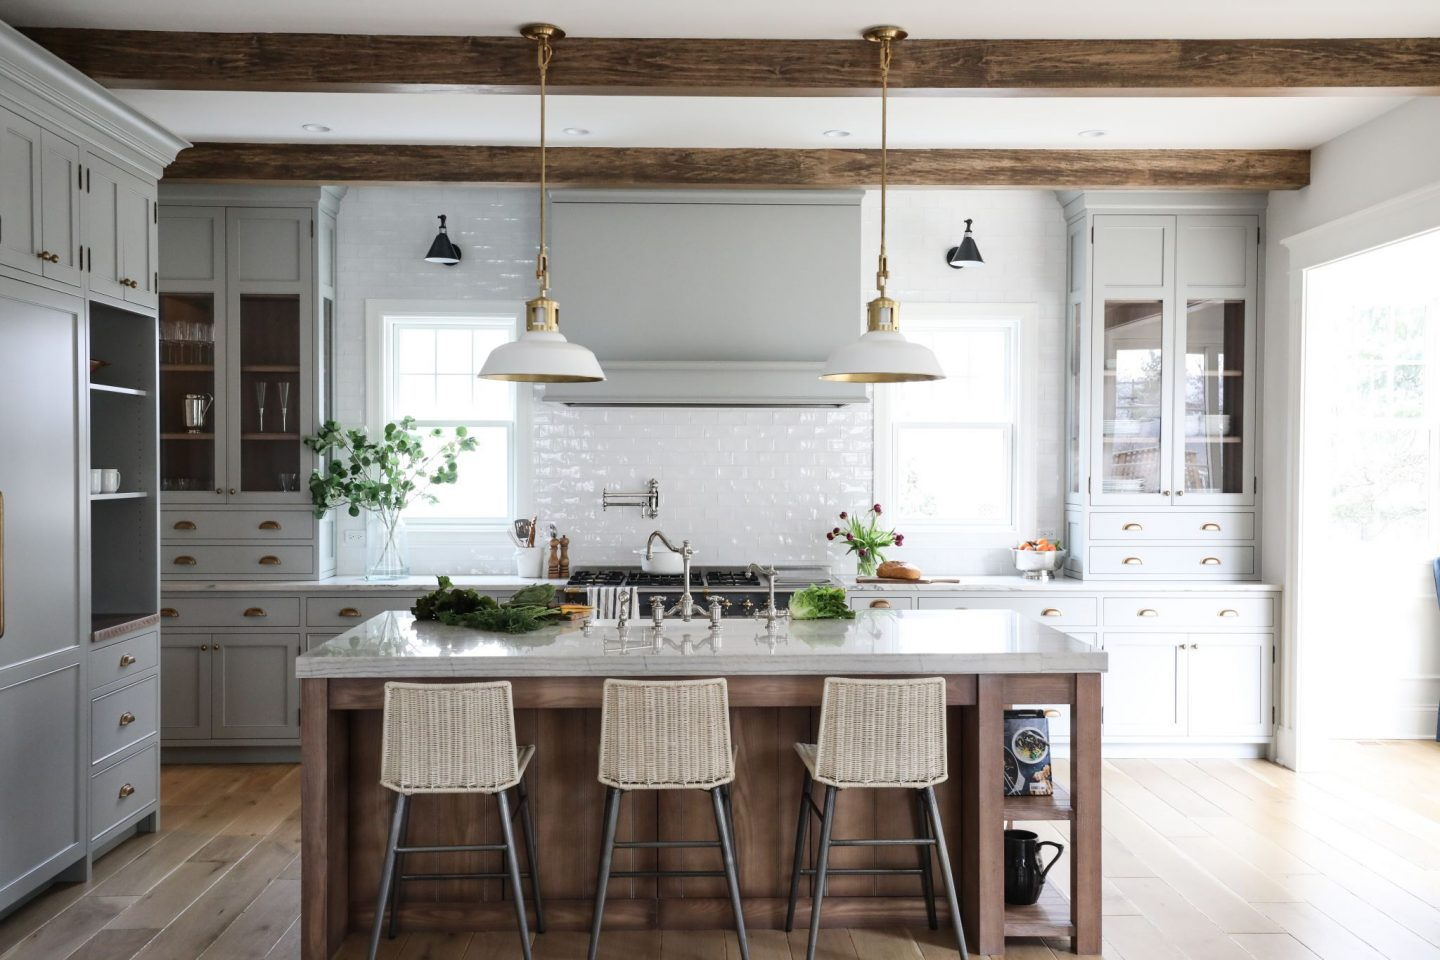 16 Simple Yet Sophisticated Kitchen Design Ideas